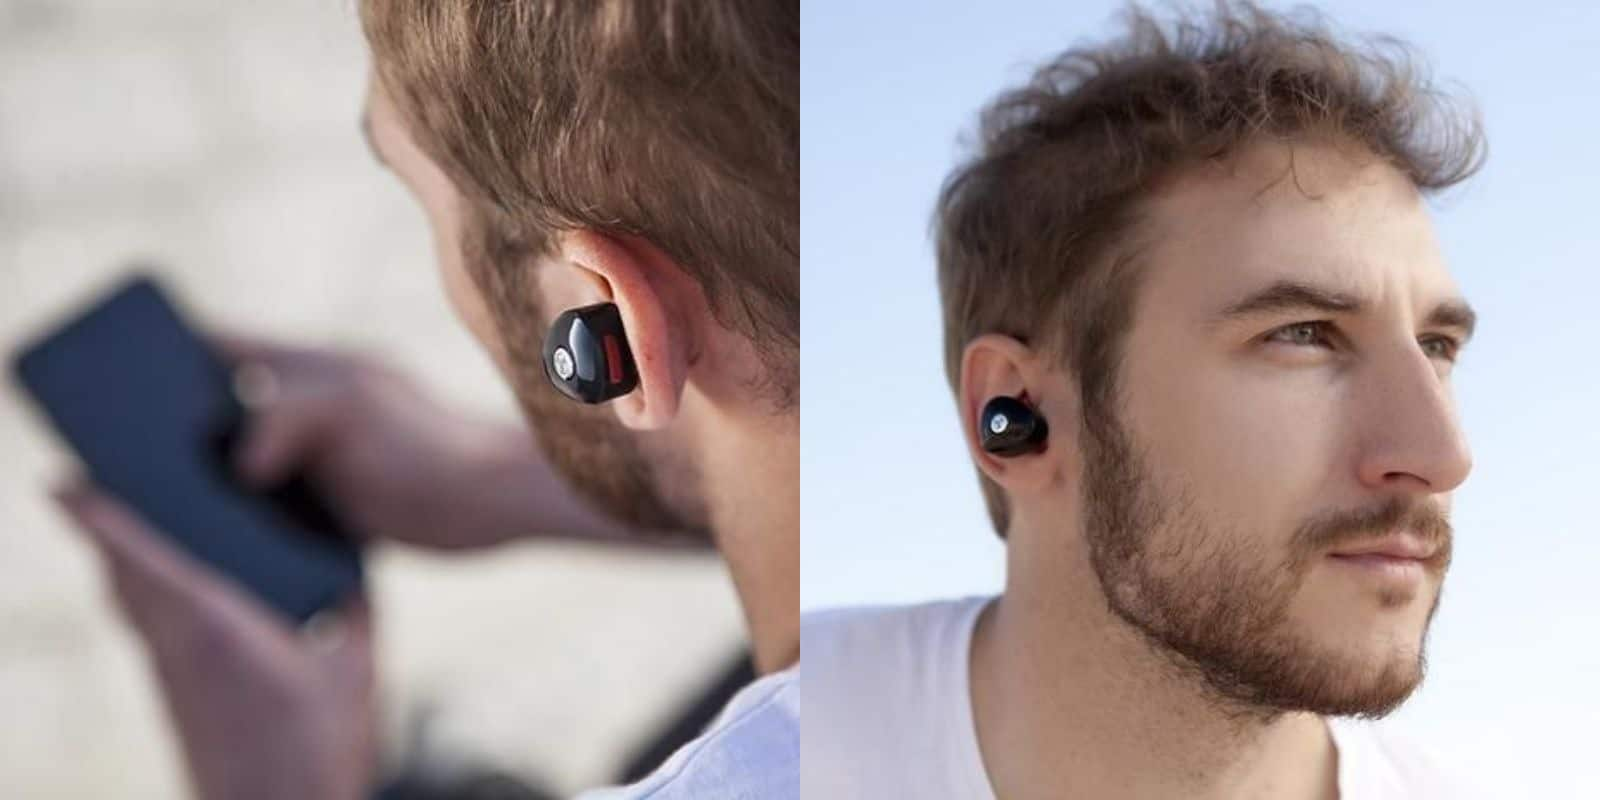 These wireless earbuds are a nice mix of high tech and understated design.